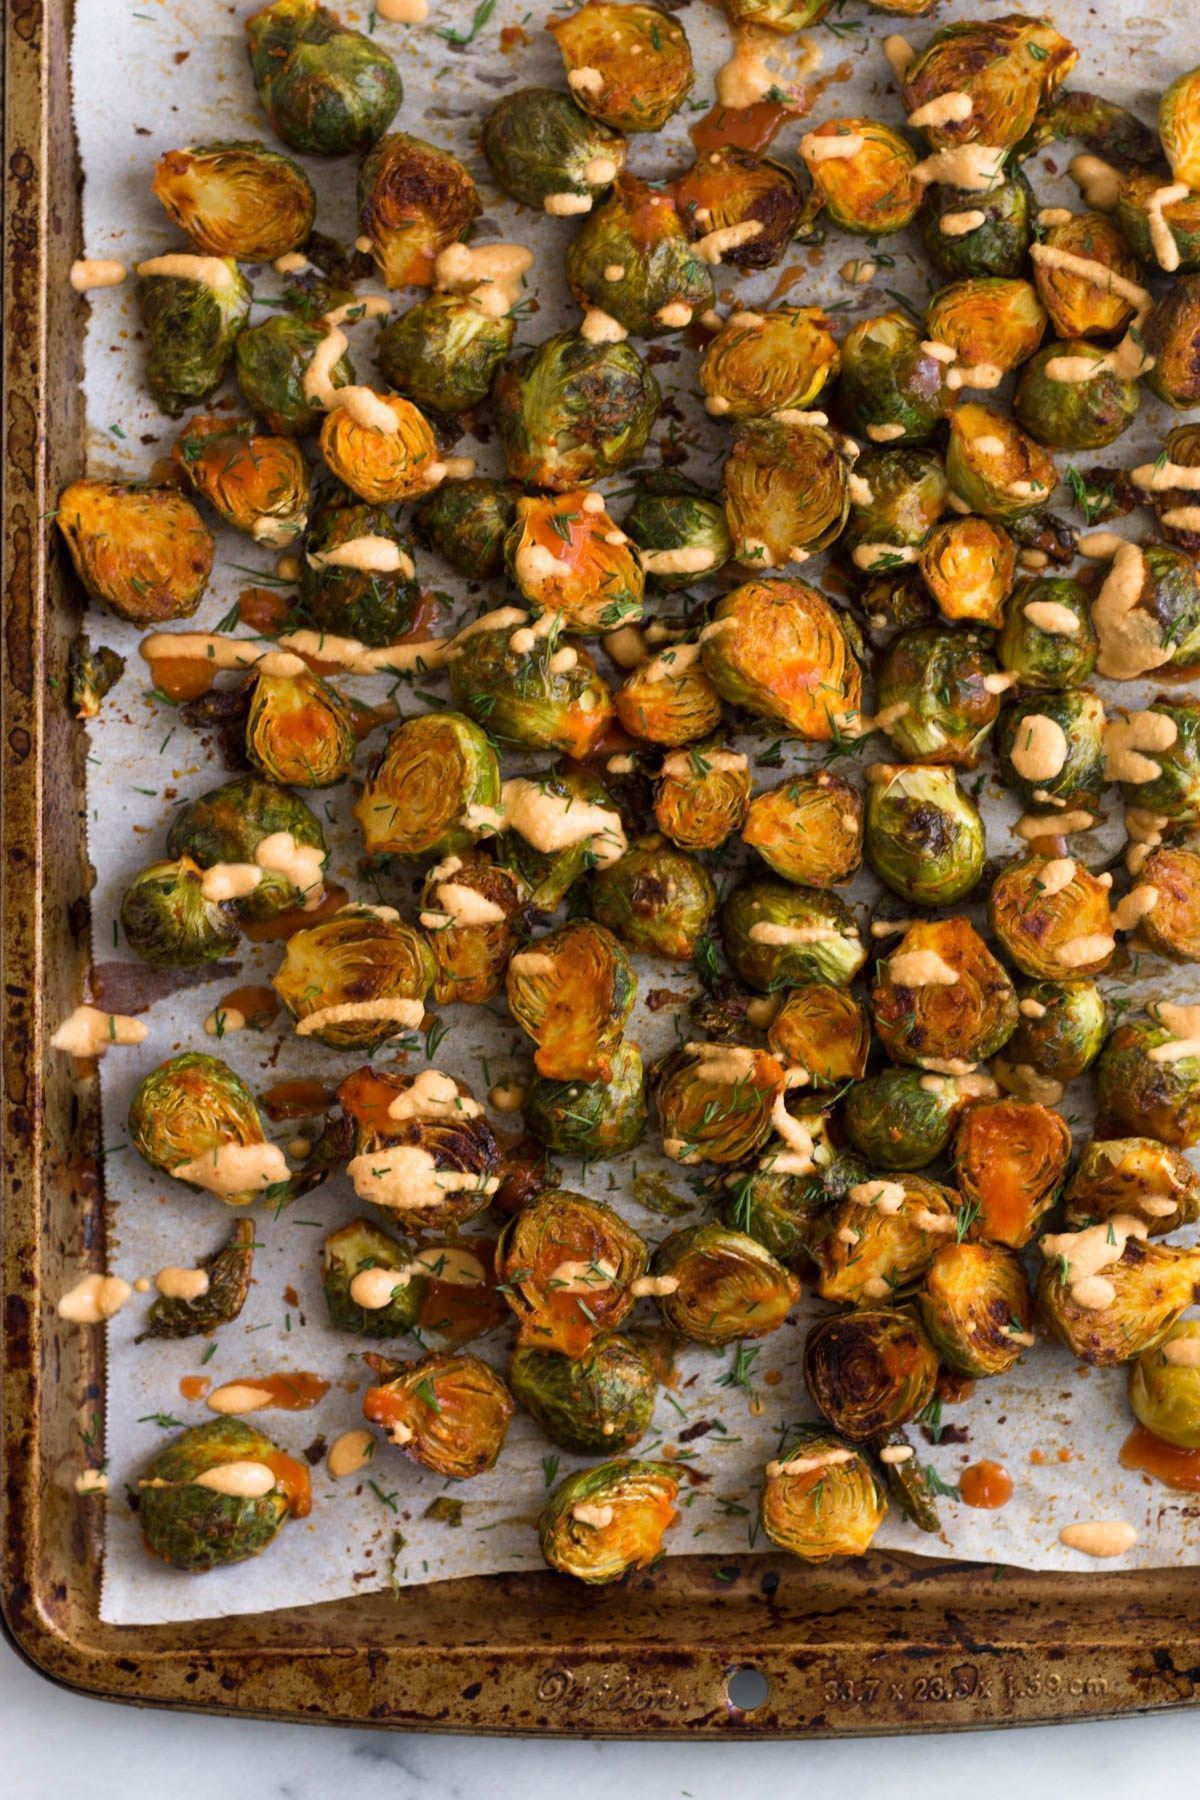 Cheesy Buffalo Brussel Sprouts #buffalobrusselsprouts Vegan and Whole30 approved, these Cheesy BuffaloBrussel Sprouts will be a sure hit! Perfect for an appetizer, side dish, or for game day snacking! Dairy free, paleo, and gluten free too - Eat the Gains #brusselsprouts #vegan #paleo #glutenfree #whole30 #buffalobrusselsprouts Cheesy Buffalo Brussel Sprouts #buffalobrusselsprouts Vegan and Whole30 approved, these Cheesy BuffaloBrussel Sprouts will be a sure hit! Perfect for an appetizer, si #buffalobrusselsprouts